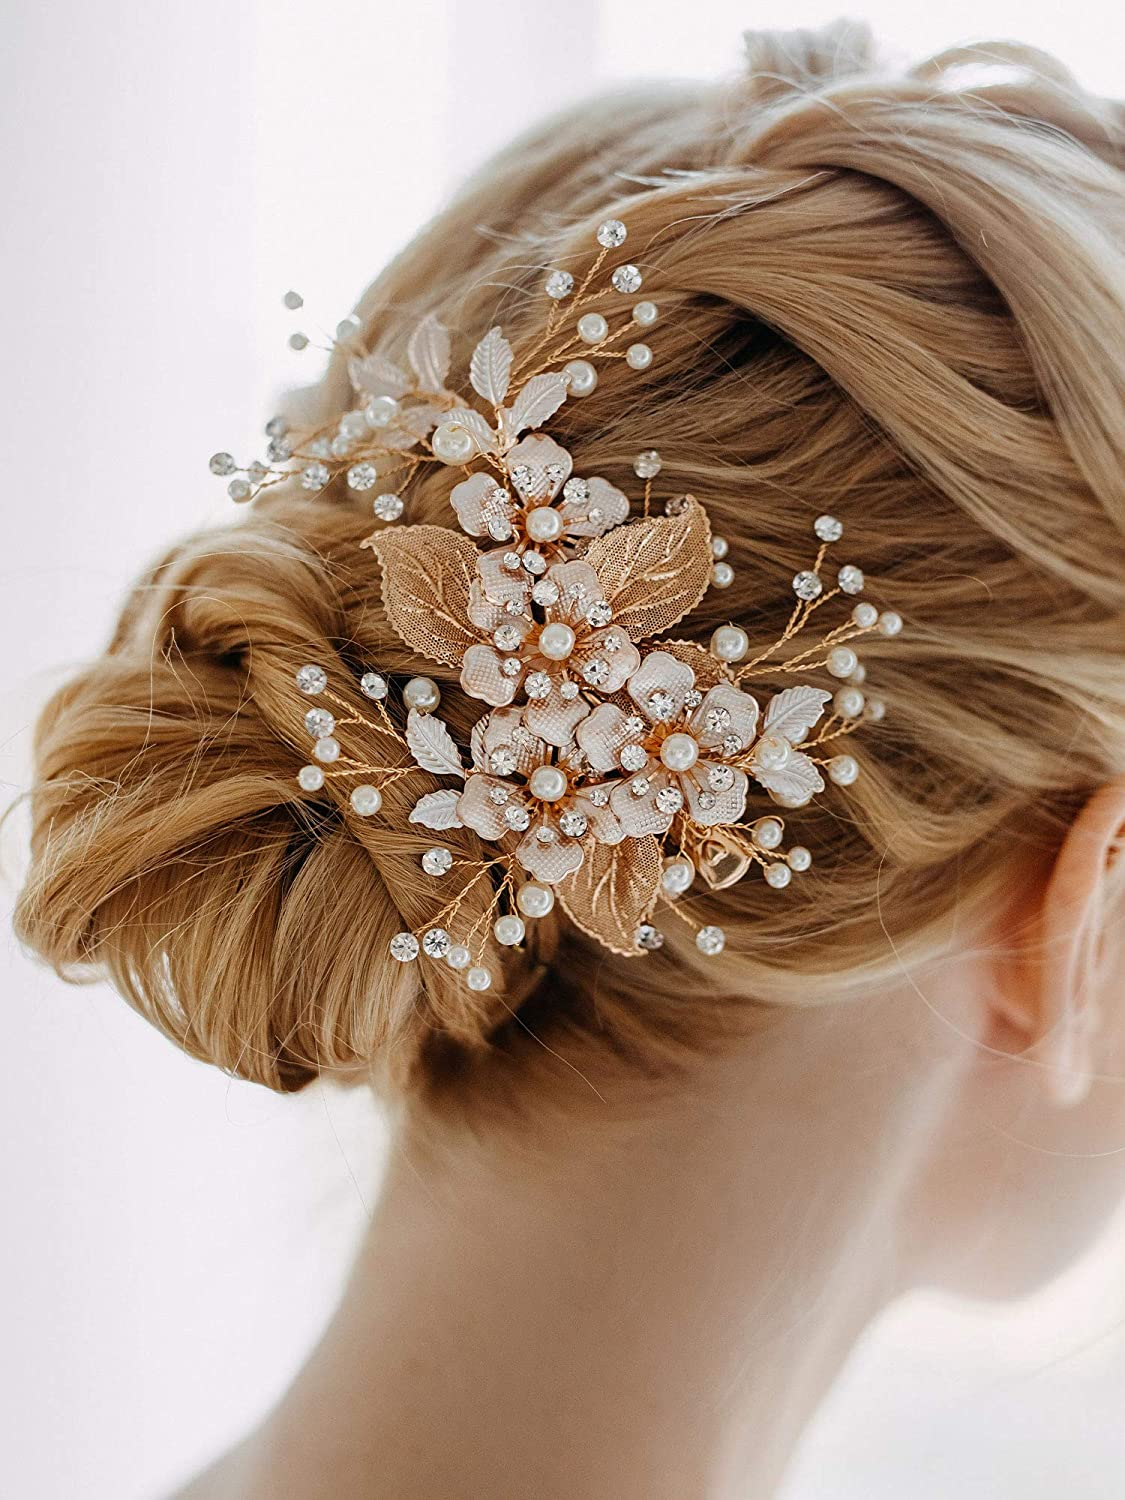 Hair Accessories Crystal Hair Combs for Women Flower Hair Slide Wedding Hair Jewelry Bride Head Piece Floral Hair Piece Jeweled Comb